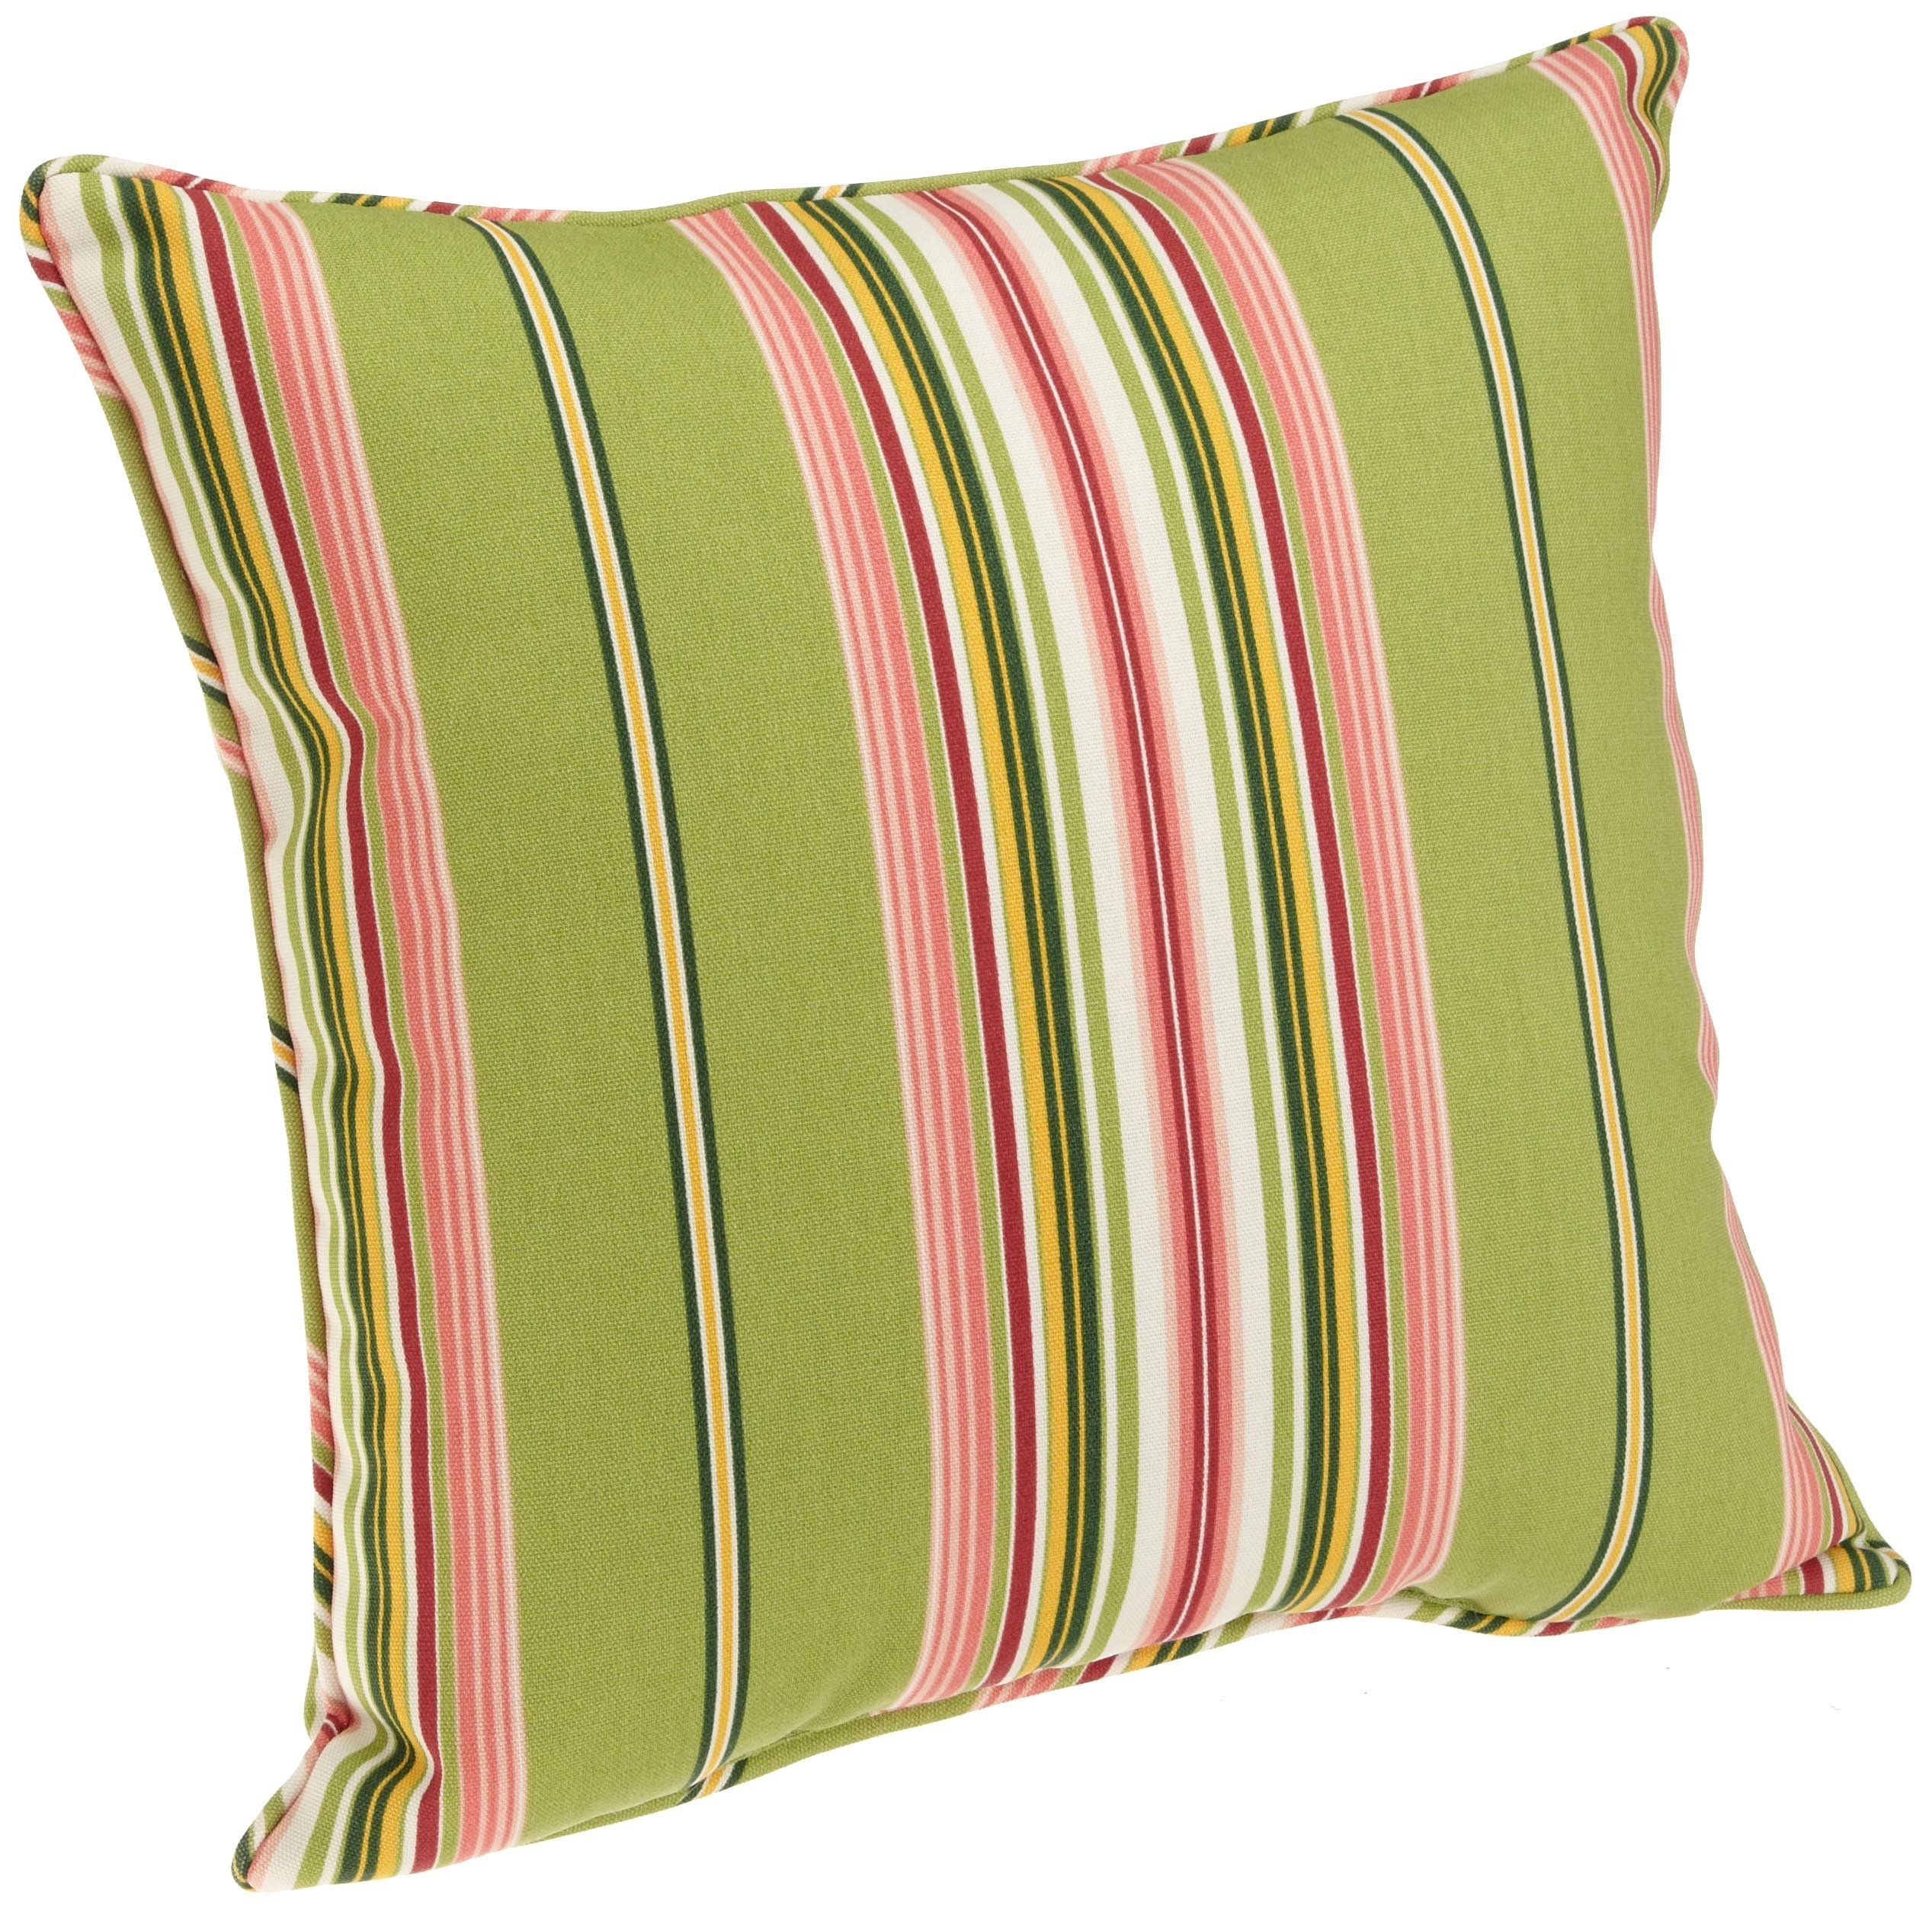 Brentwood Indoor Outdoor Pillow 17 By 17 Inch Welt Cord Lennar Spring Indoor Outdoor Pillows Pillows Outdoor Throw Pillows